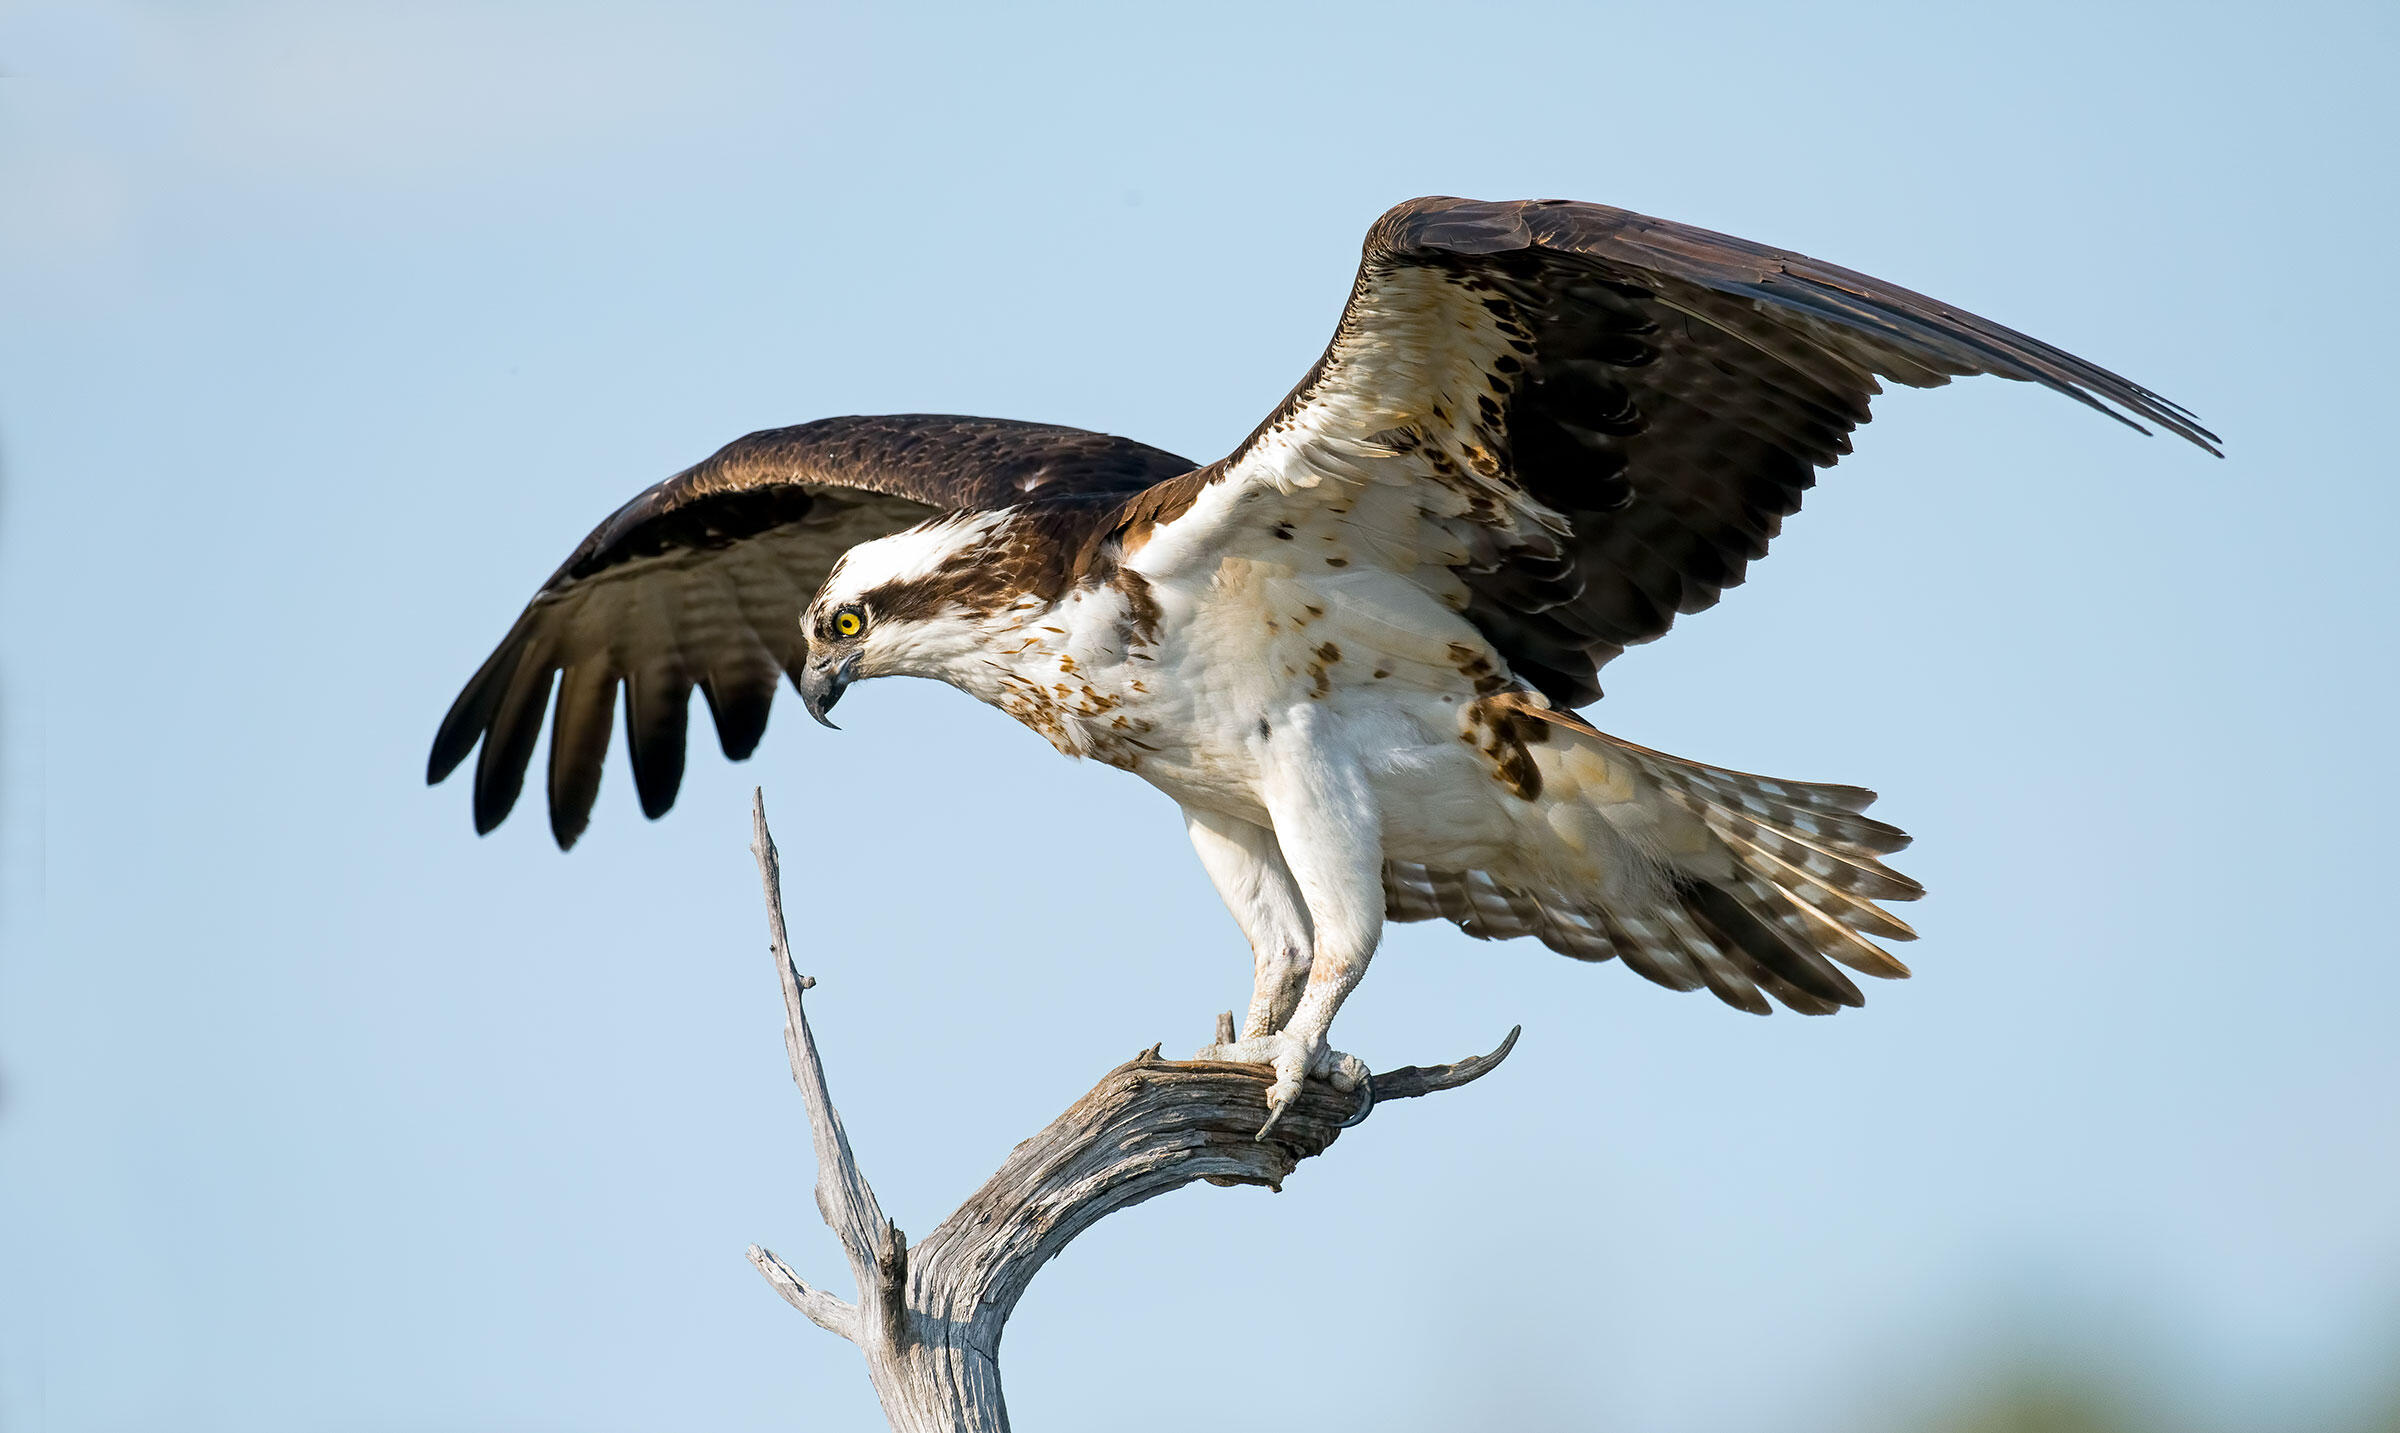 Forty years ago the Osprey was considered an endangered species in New Jersey. Today, thanks to better environmental regulations and human-made nesting structures, it turns up often on coastal birding lists. Brian Kushner